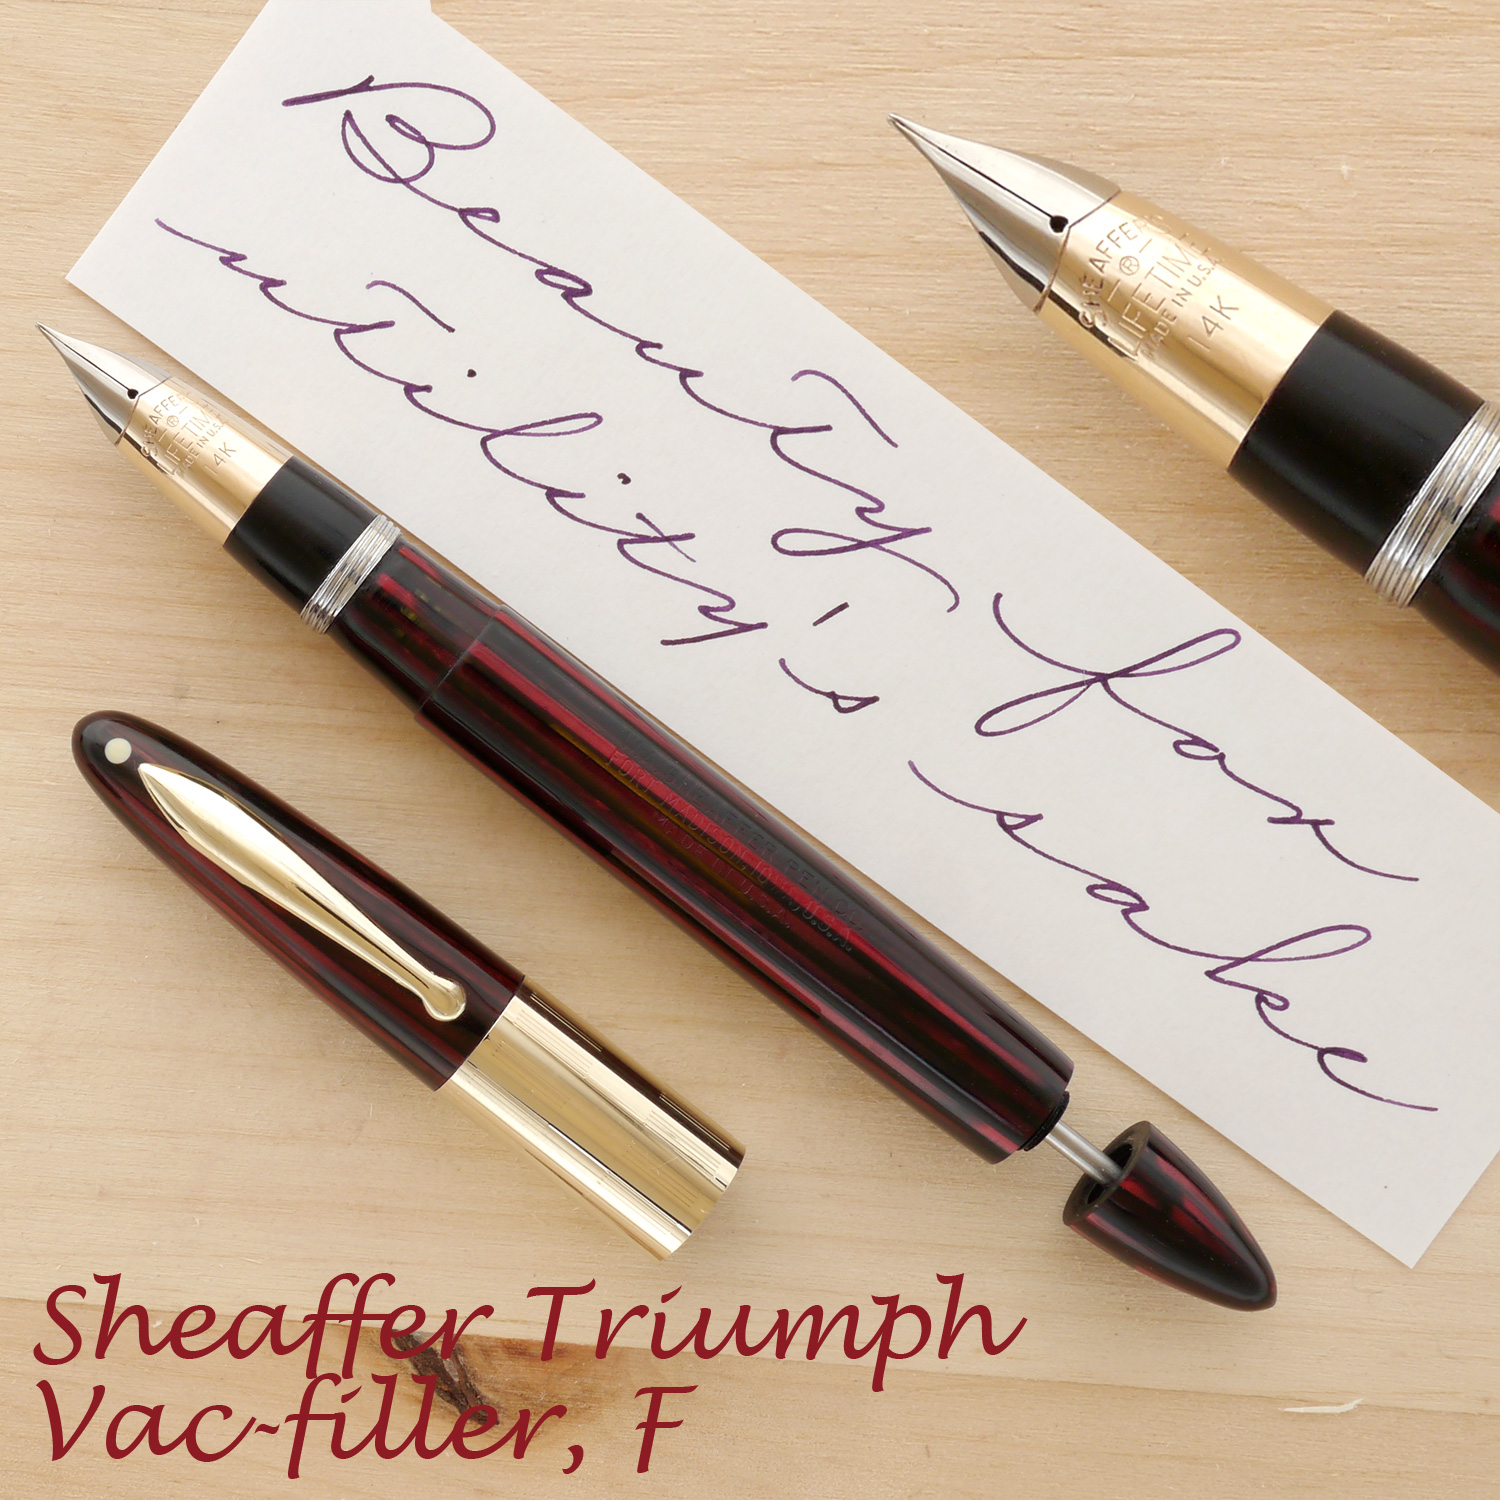 Sheaffer White Dot Lifetime Triumph Vac filler with the cap off and the plunger partially extended